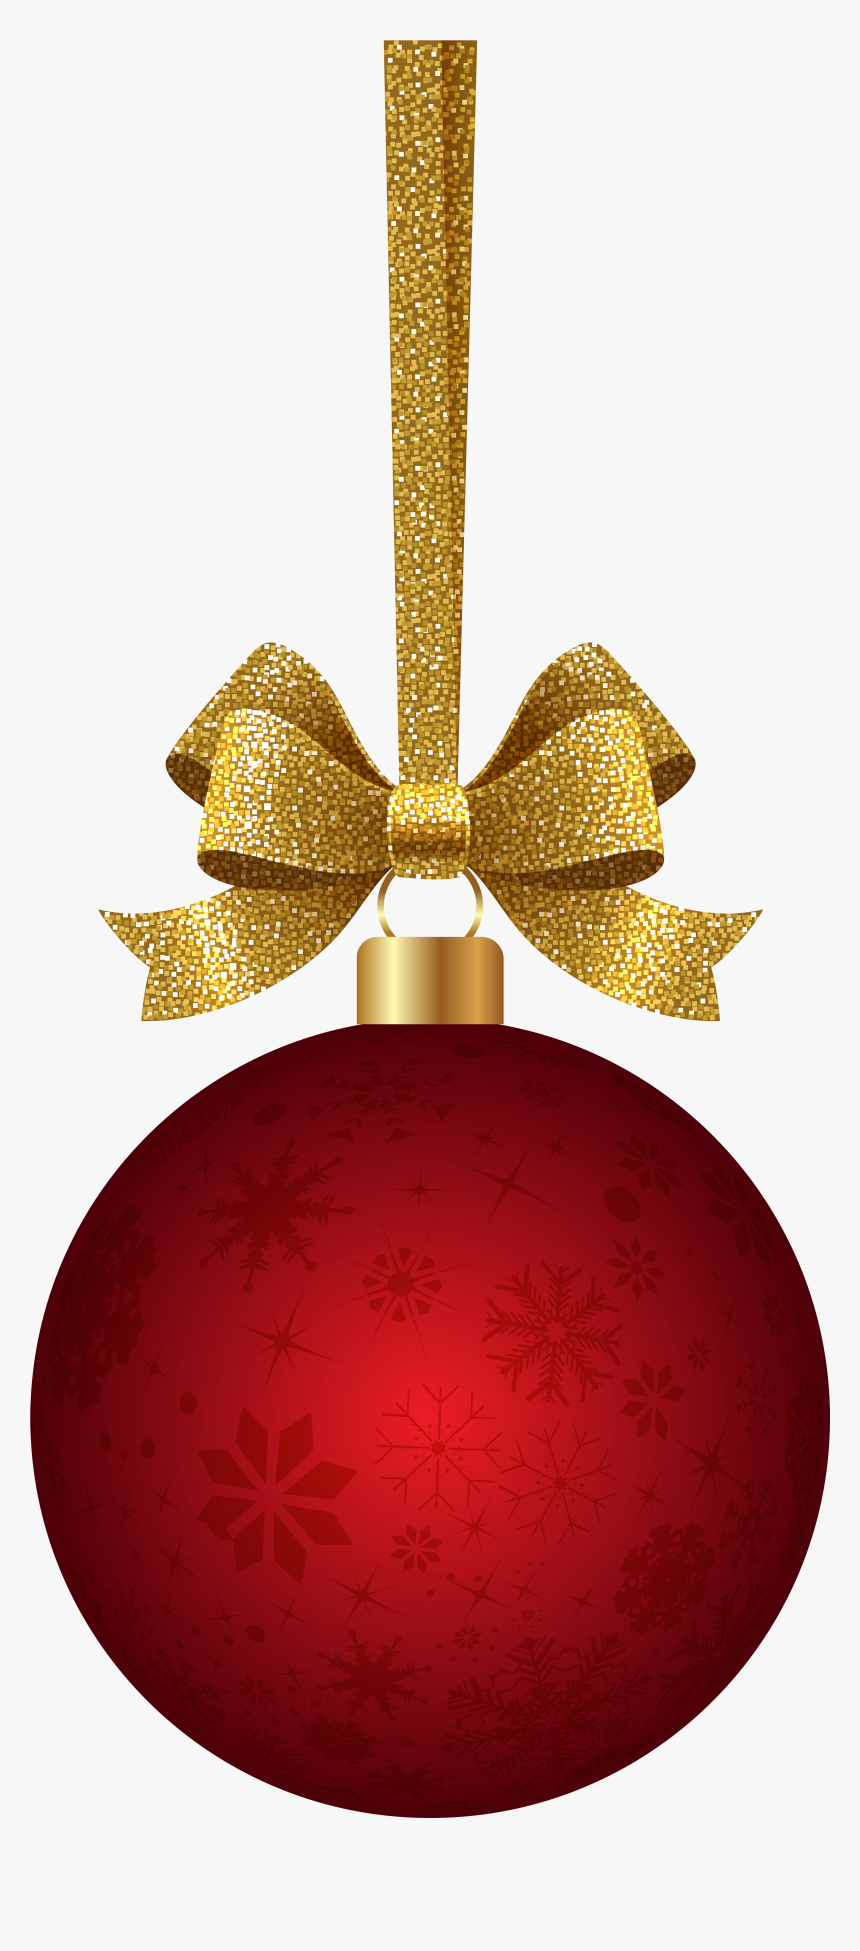 Clipart Ball Red Red Christmas Hanging Ornament - Hanging Red Christmas Ornaments, HD Png Download, Free Download